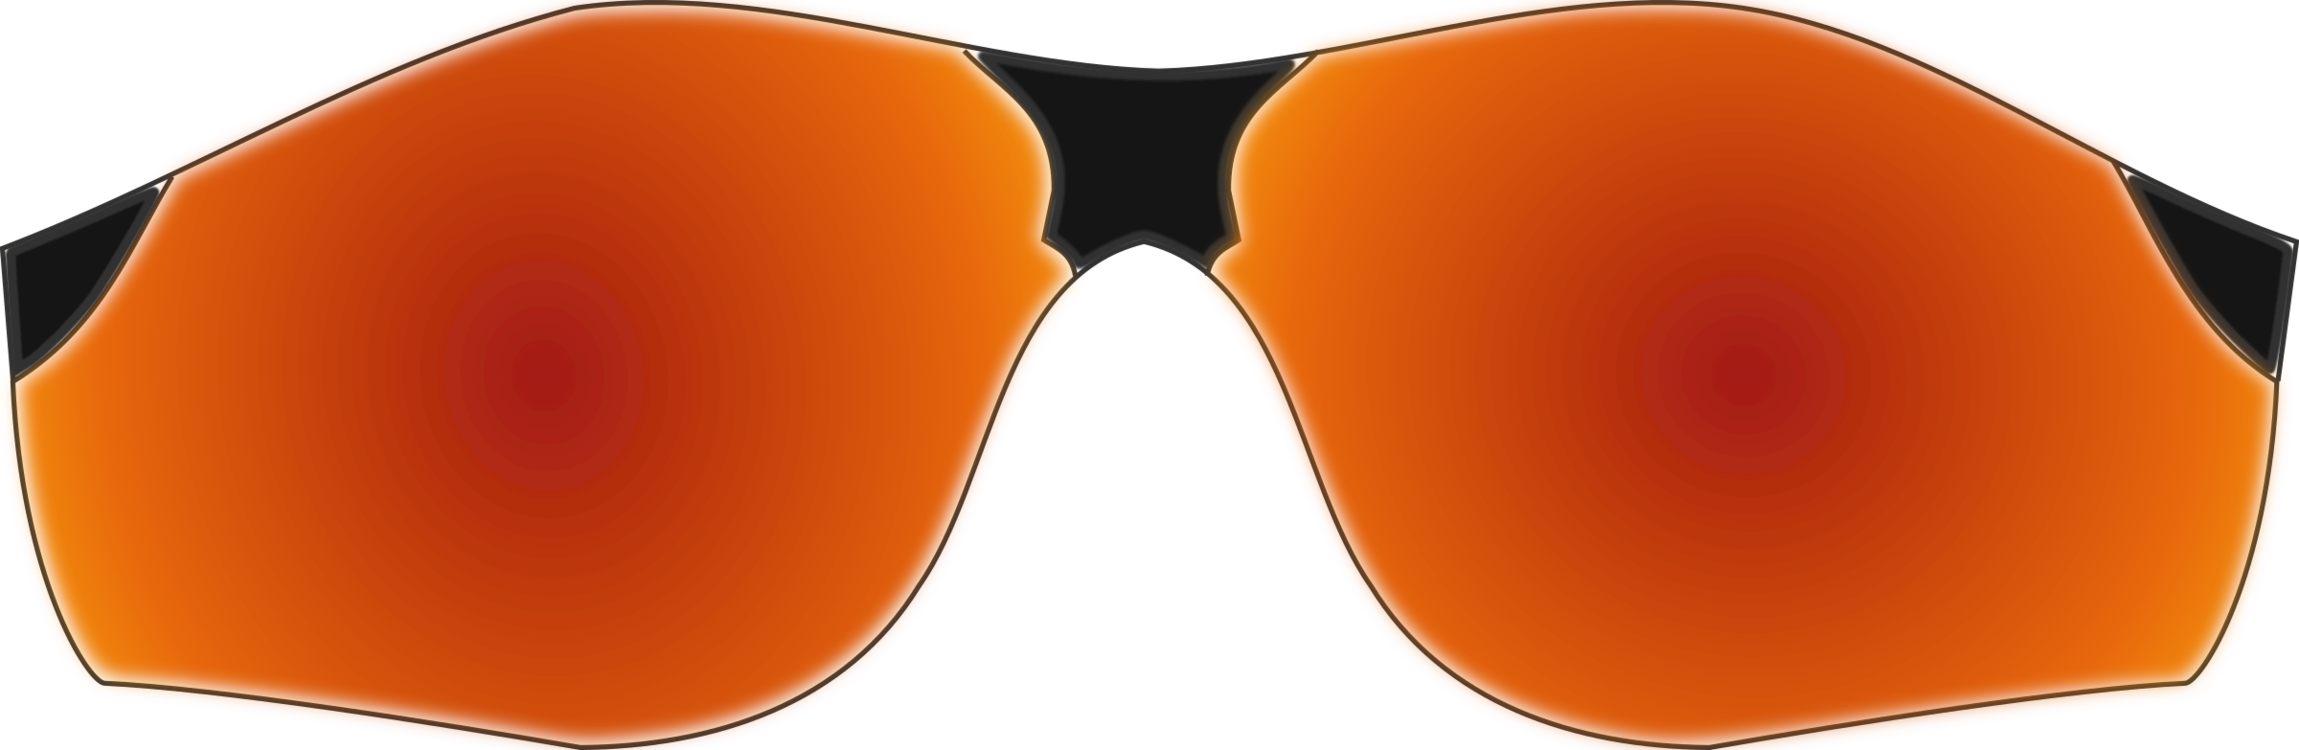 royalty free download Aviator clipart mirrored sunglasses. Police free commercial.